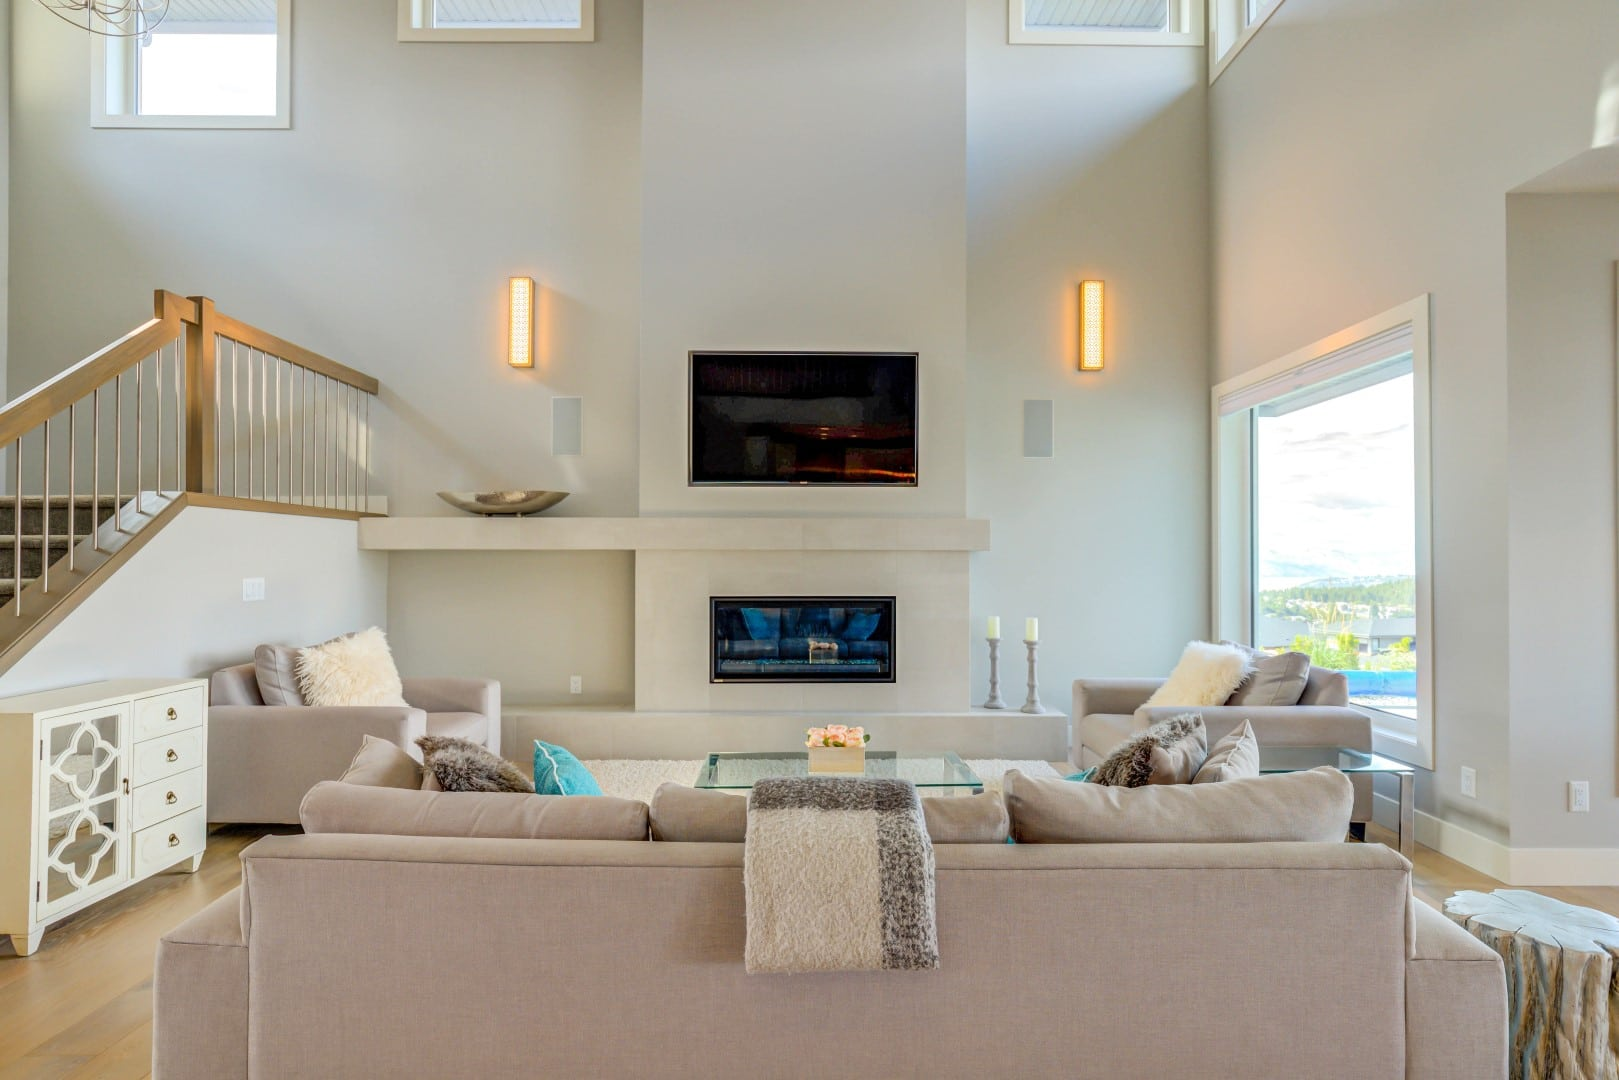 Rocky Point Wilden, Lozinski (3), Clean Fireplace Design